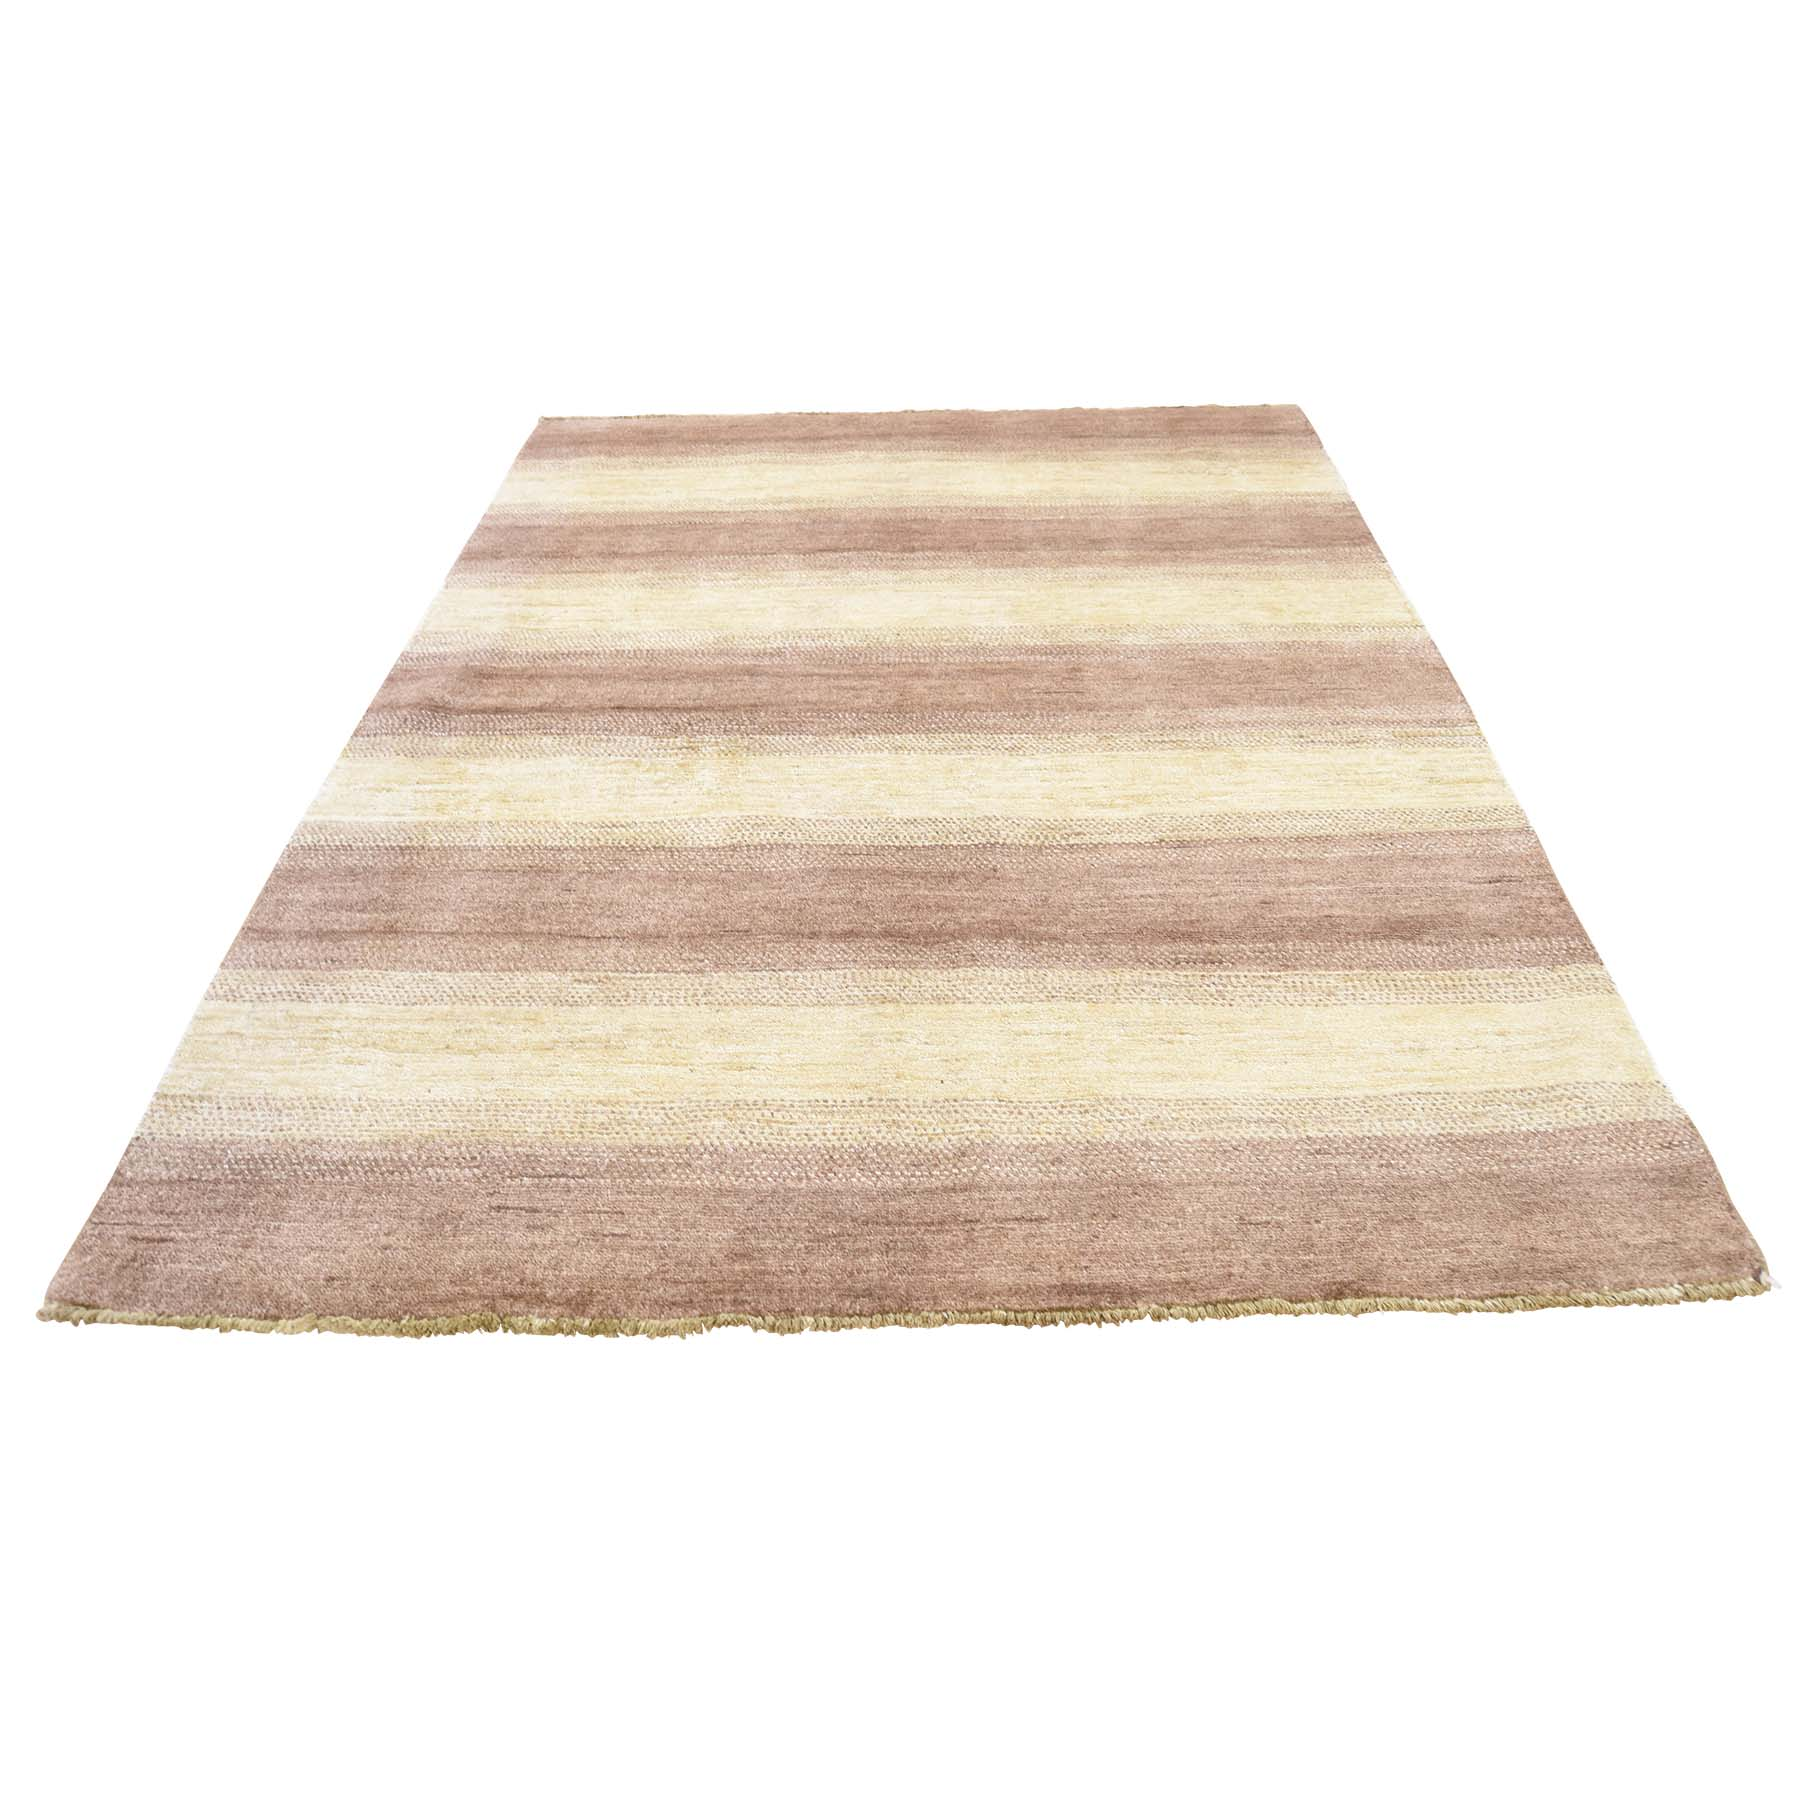 "4'7""X6'3"" Hand Knotted Pure Wool Gabbeh Peshawar Striped Design Rug moac9dca"